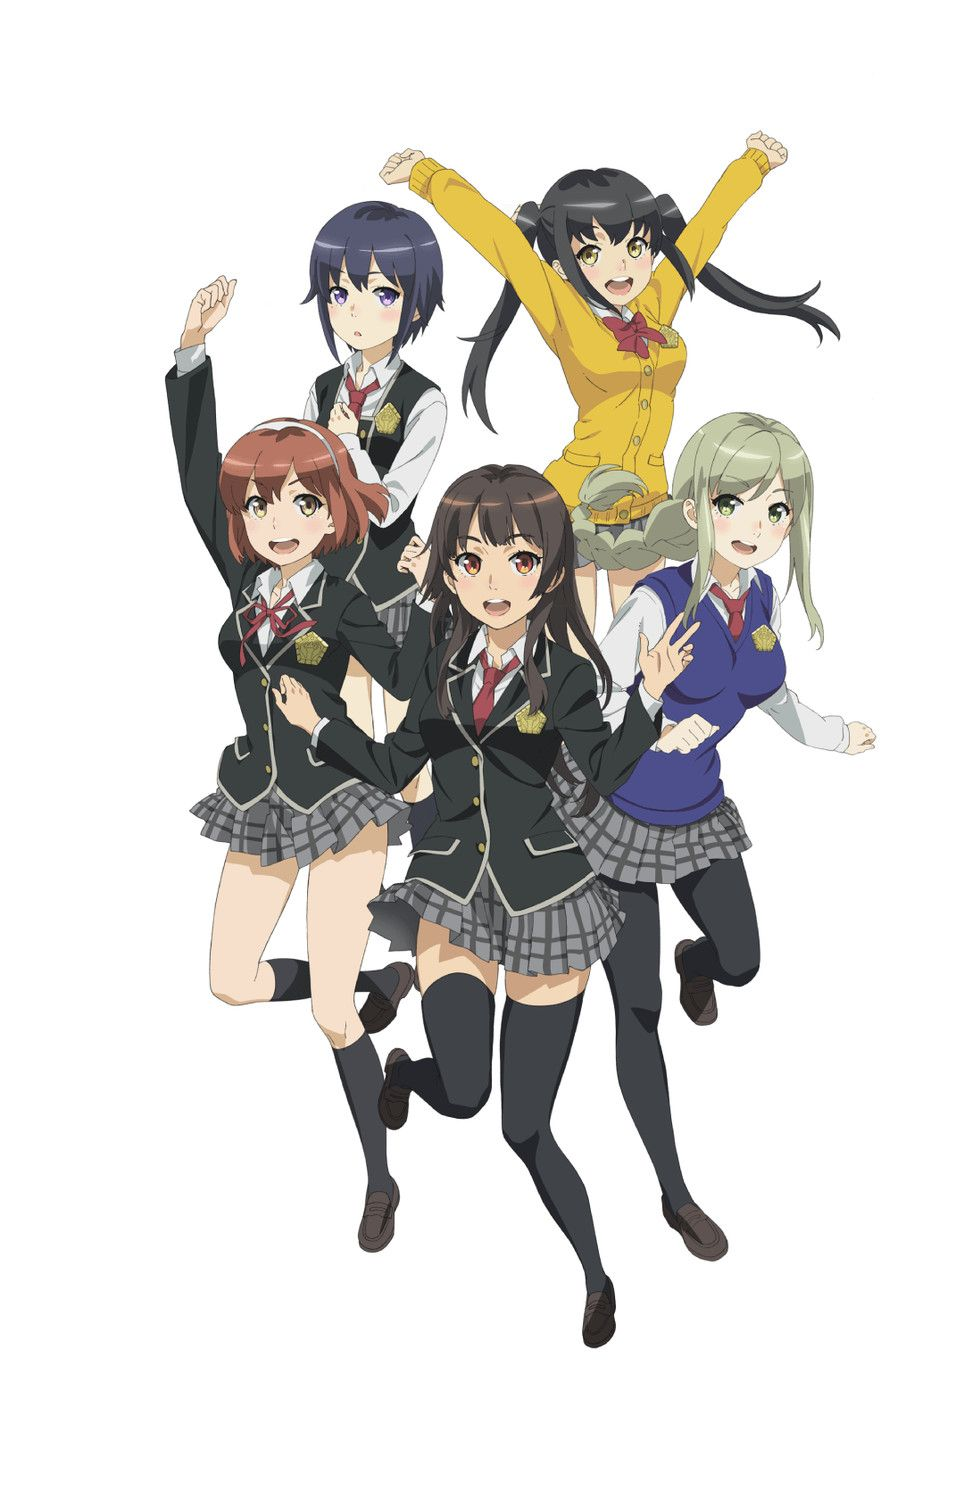 Square Enix's Schoolgirl Strikers Game App Gets TV Anime by J.C. Staff      Magical Index/Azumanga Daioh's Nishikiori helms anime premiering next January        A website has opened on Monday to announce that Schoolgirl S... Check more at http://animelover.pw/square-enixs-schoolgirl-strikers-game-app-gets-tv-anime-by-j-c-staff/